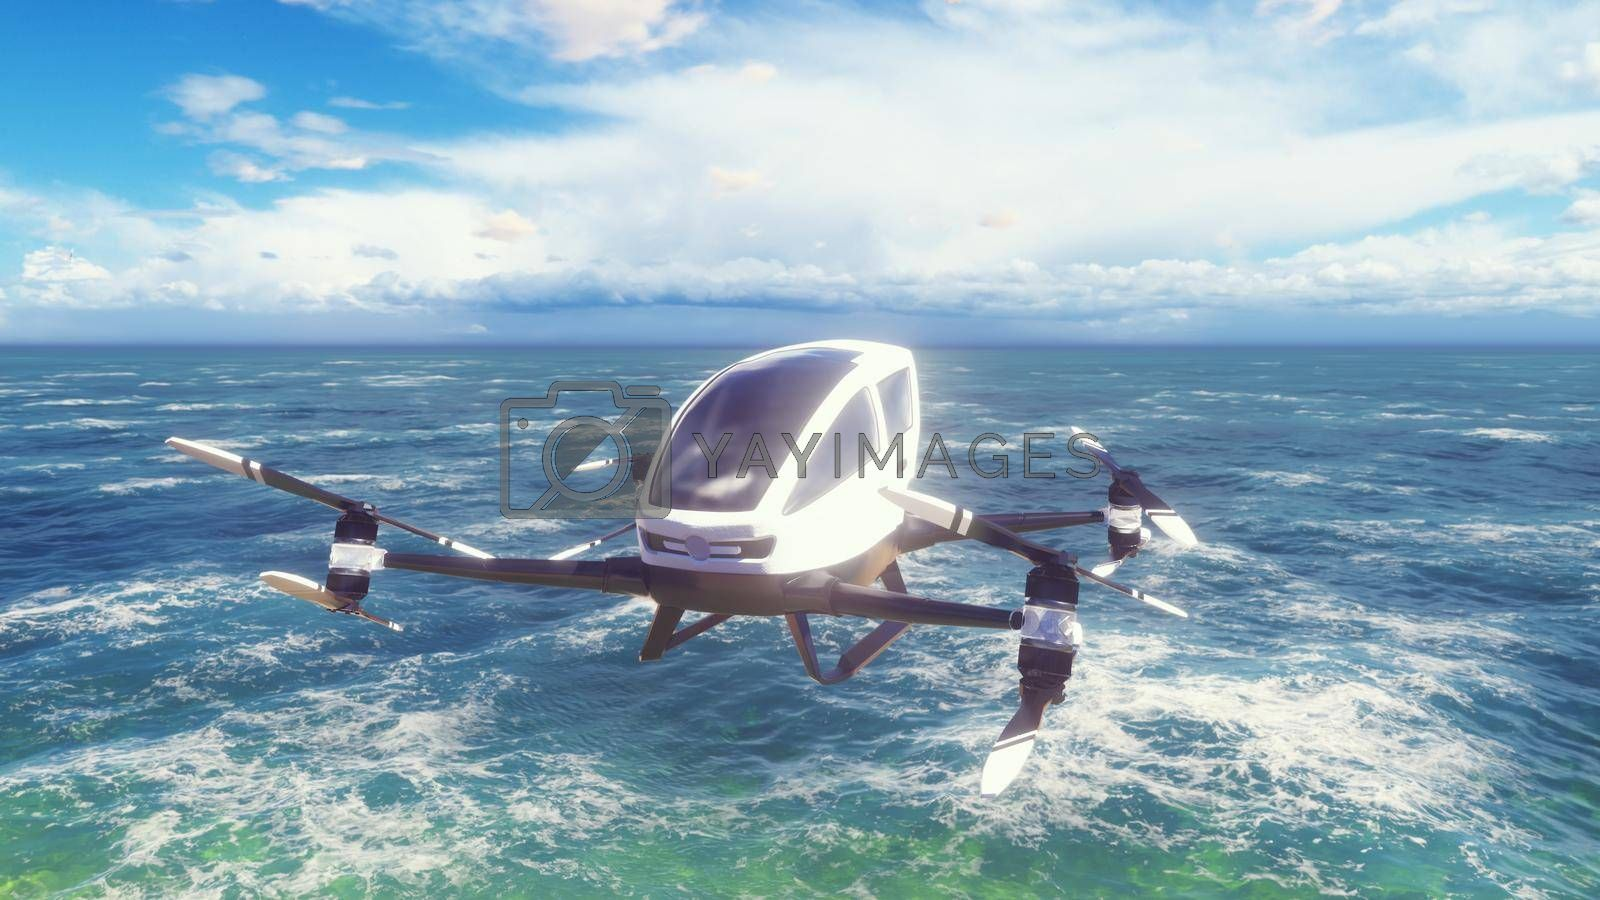 An unmanned passenger air taxi flies over the sea. The concept of the future driverless taxi.